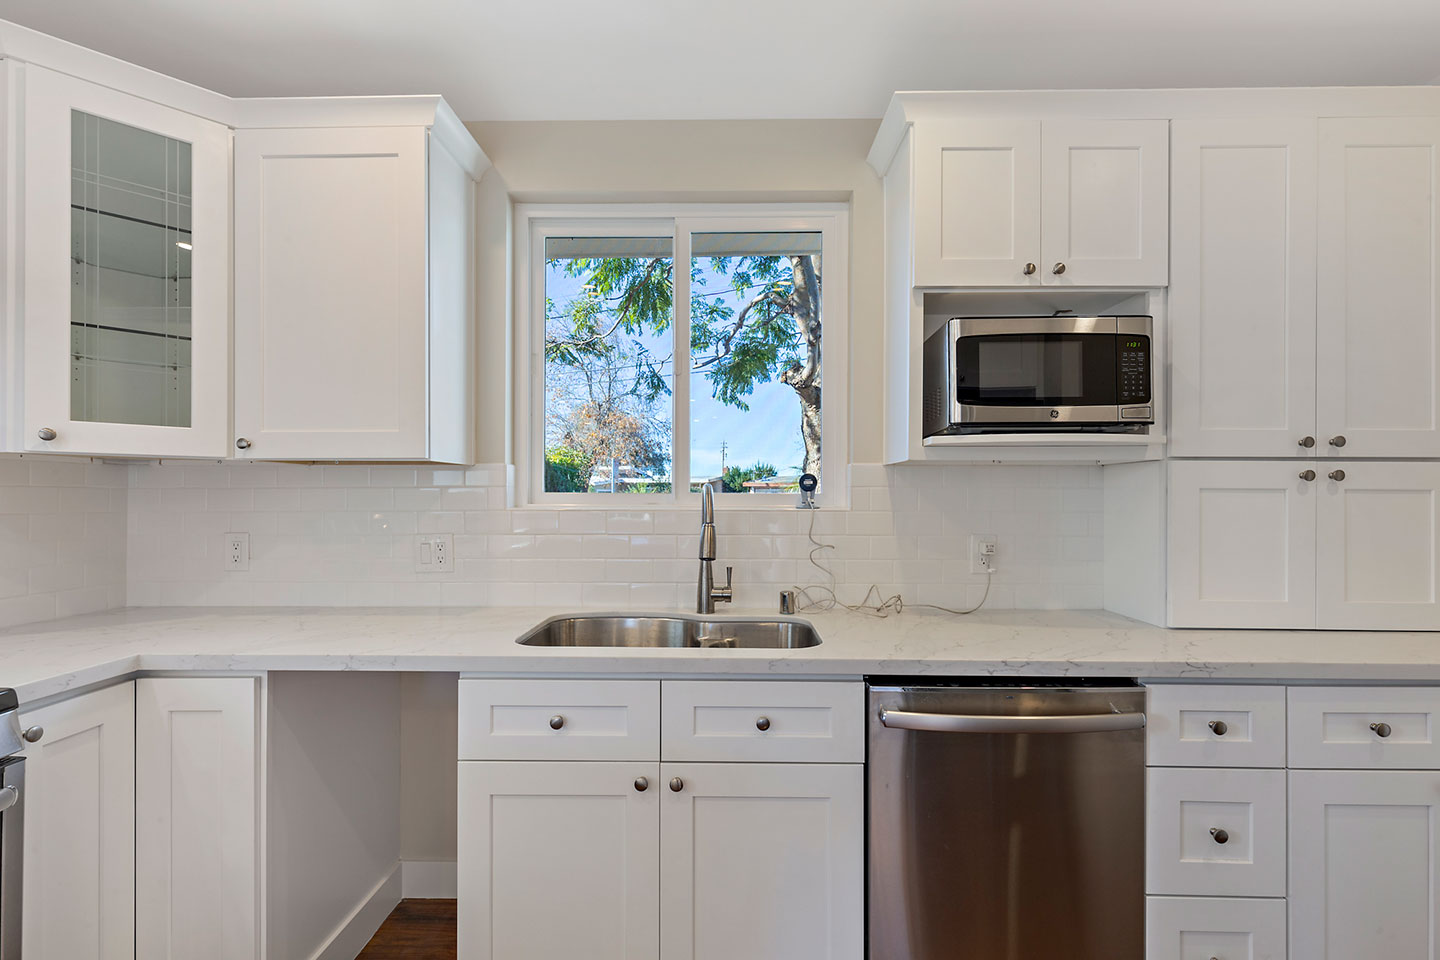 floor to ceiling cabinets with square cabinet inlays